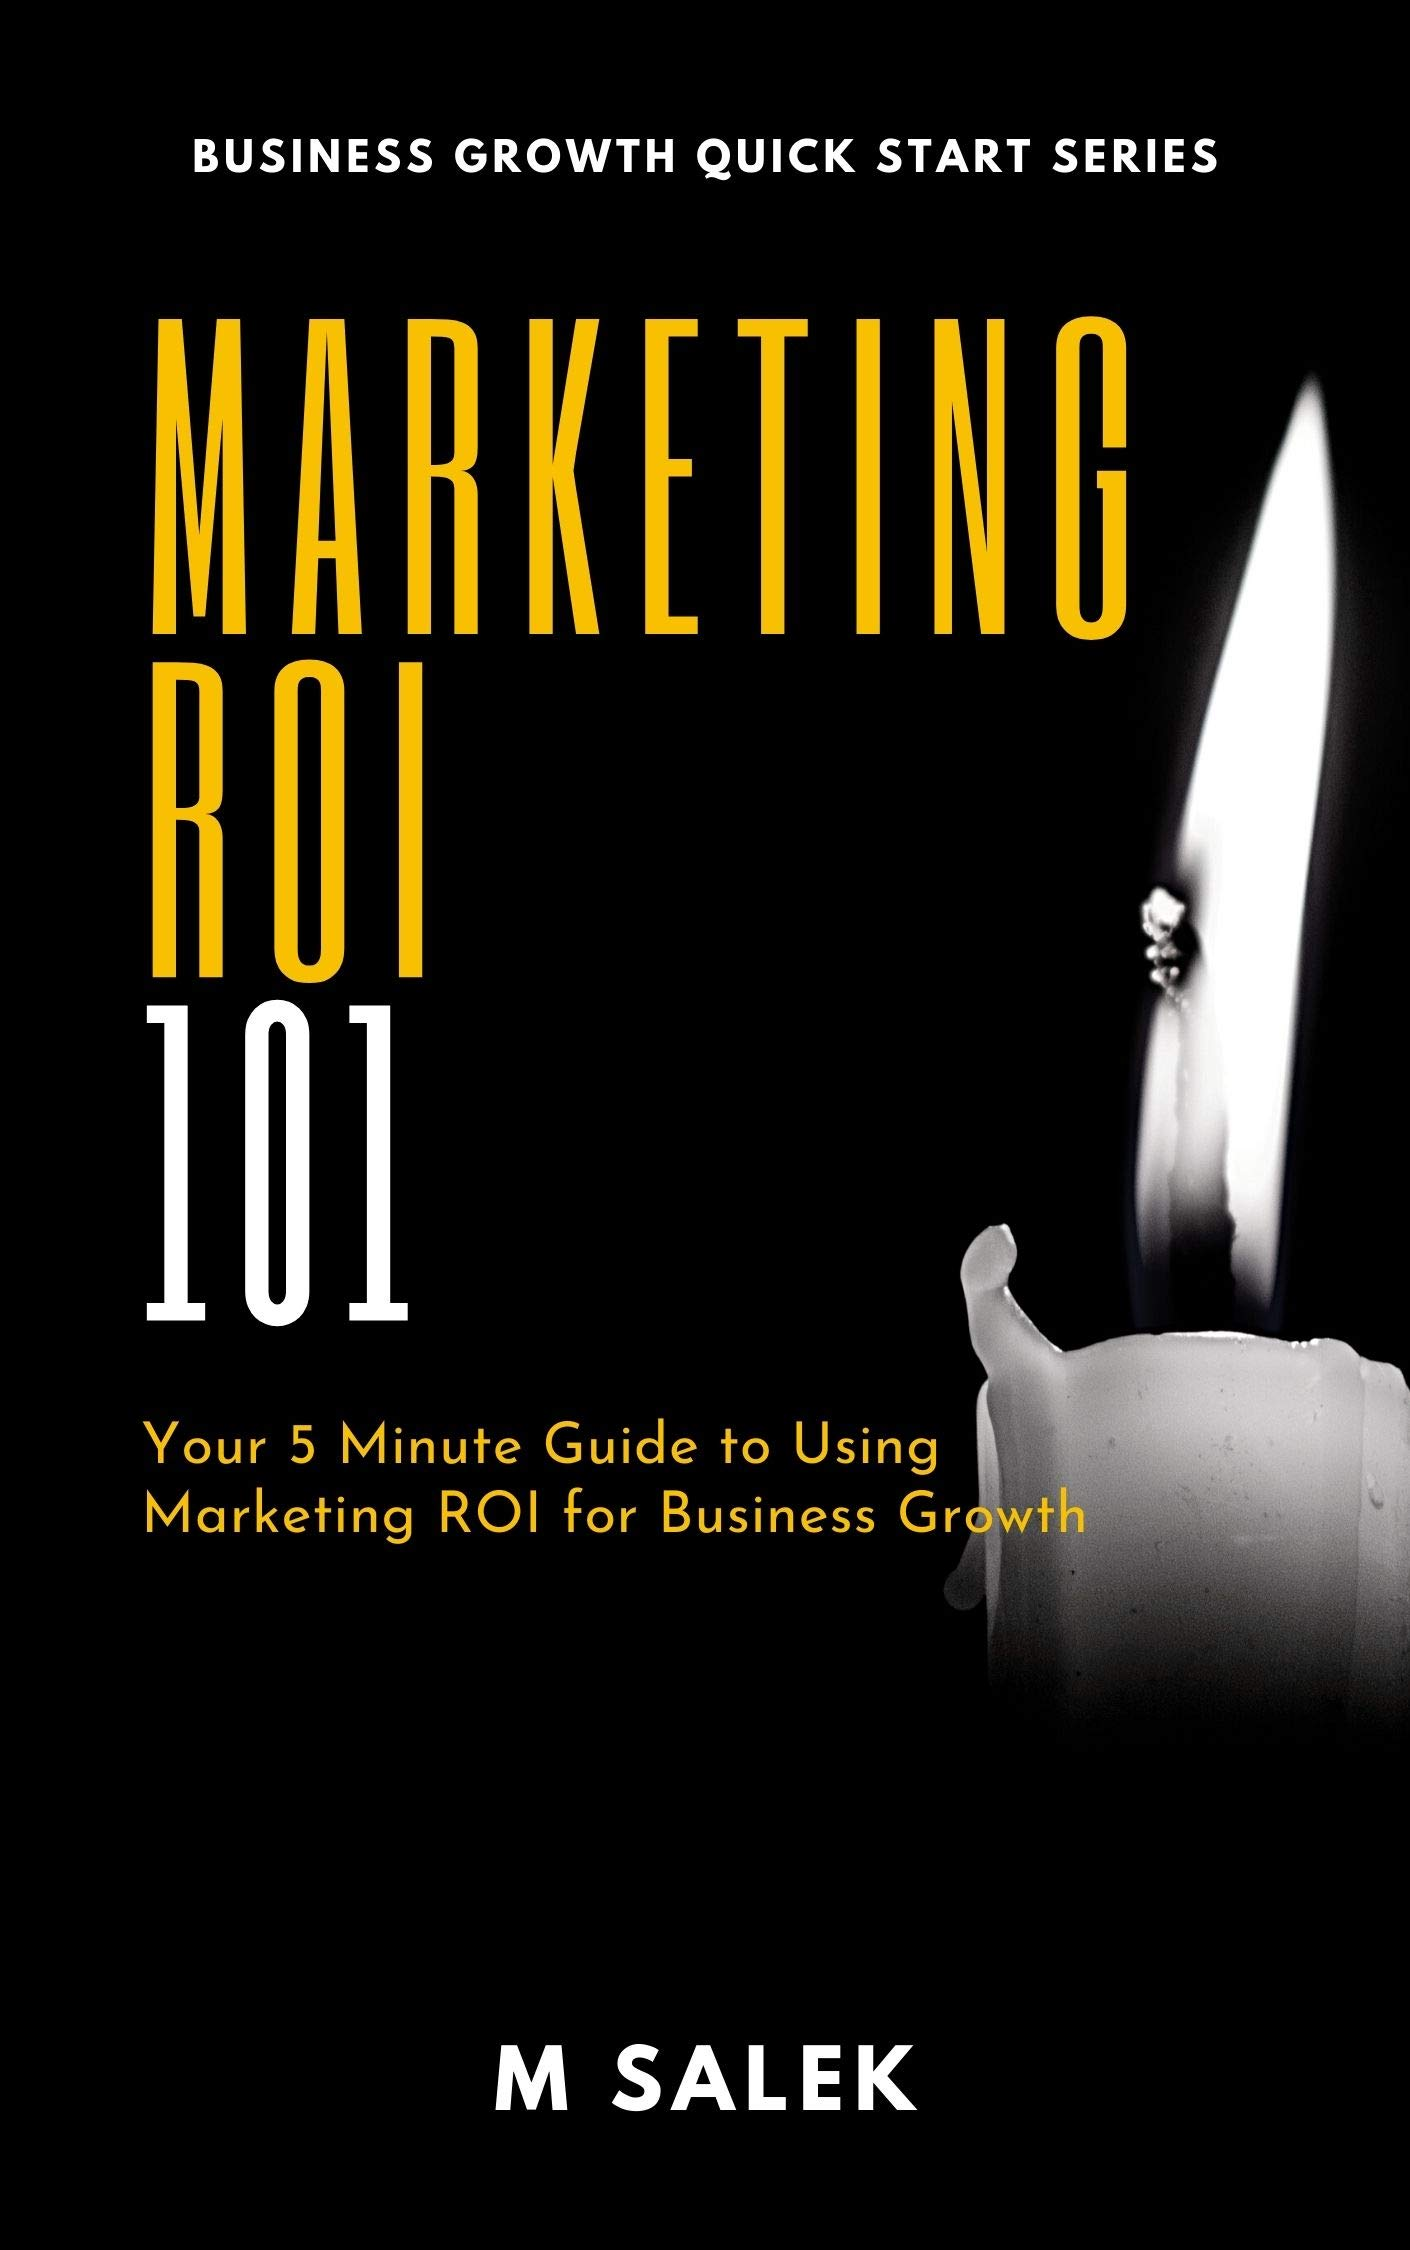 Marketing ROI 101: Your 5 Minute Guide to Using Marketing ROI for Business Growth (Business Growth Quick Start Series Book 12)